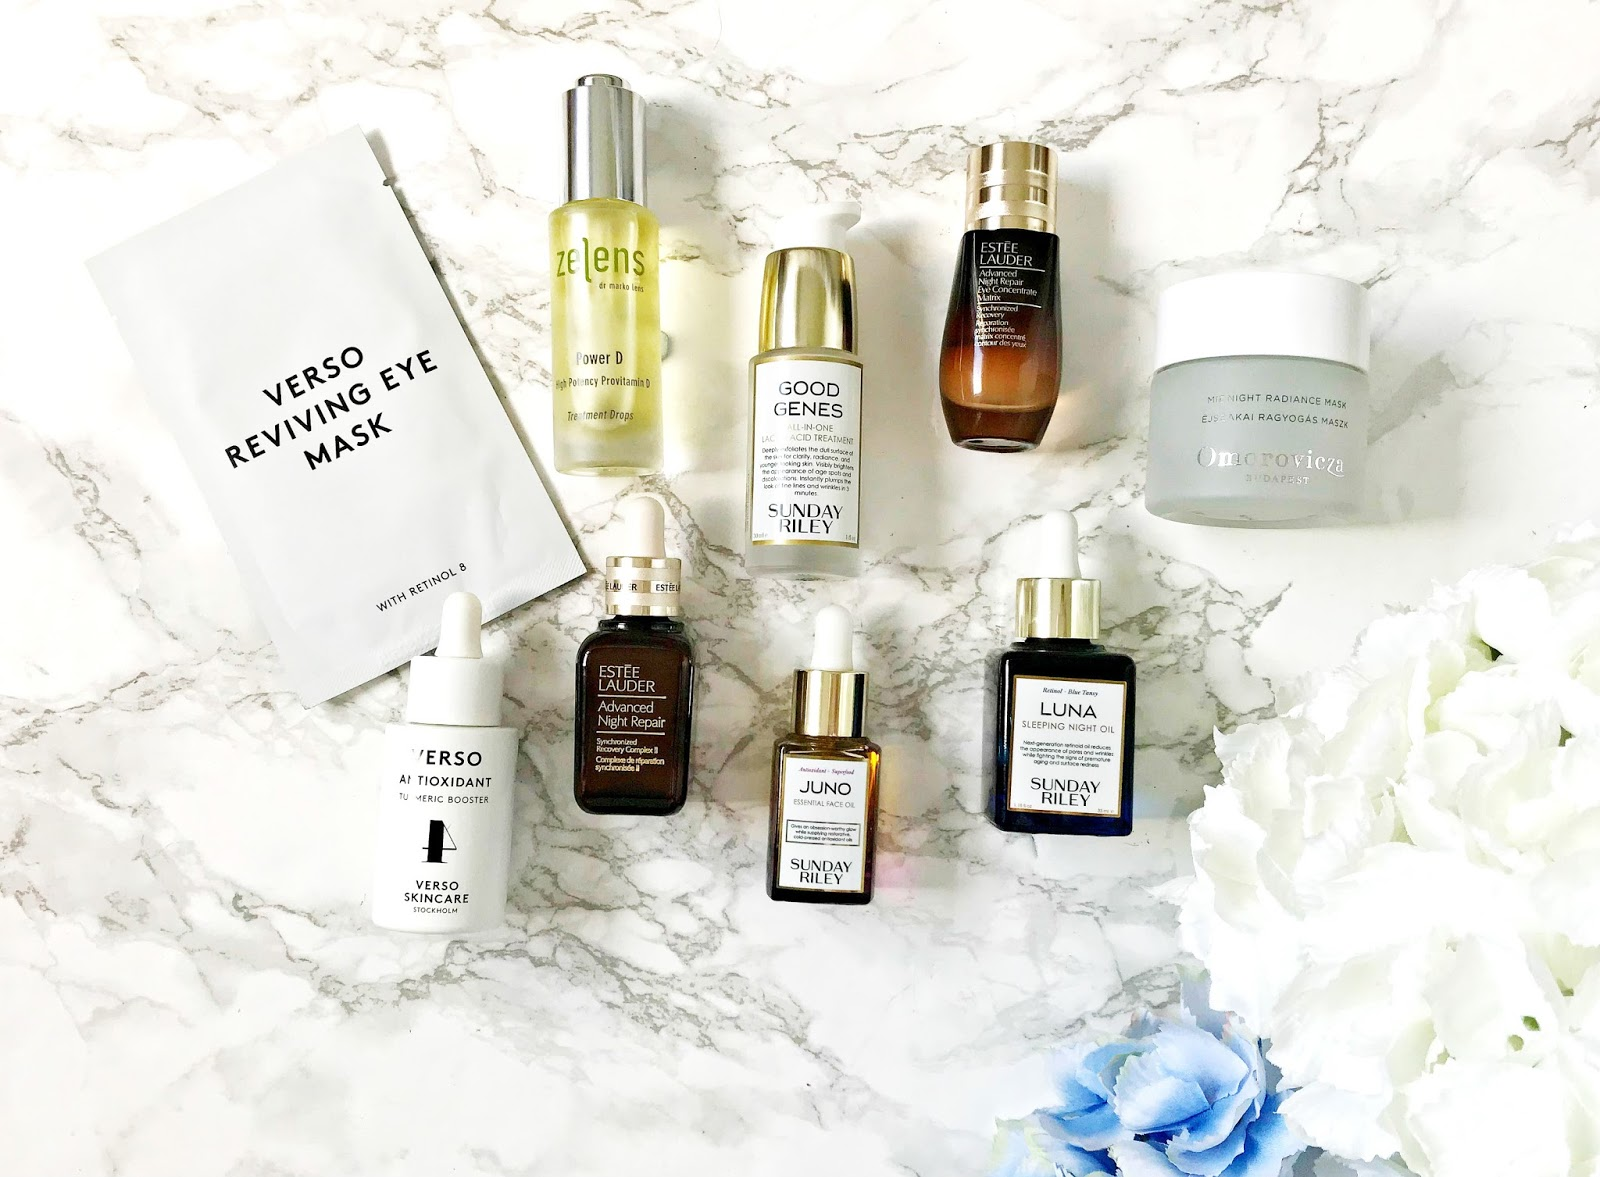 Sunday Riley, Good Genes, Skincare, Juno, Luna, Estée Lauder Advanced Night Repair, Verso Turmeric Booster, Verso Reviving Eye Mask, Estée Lauder Advanced Night Repair, Omorovicza Midnight Radiance Mask,  Review